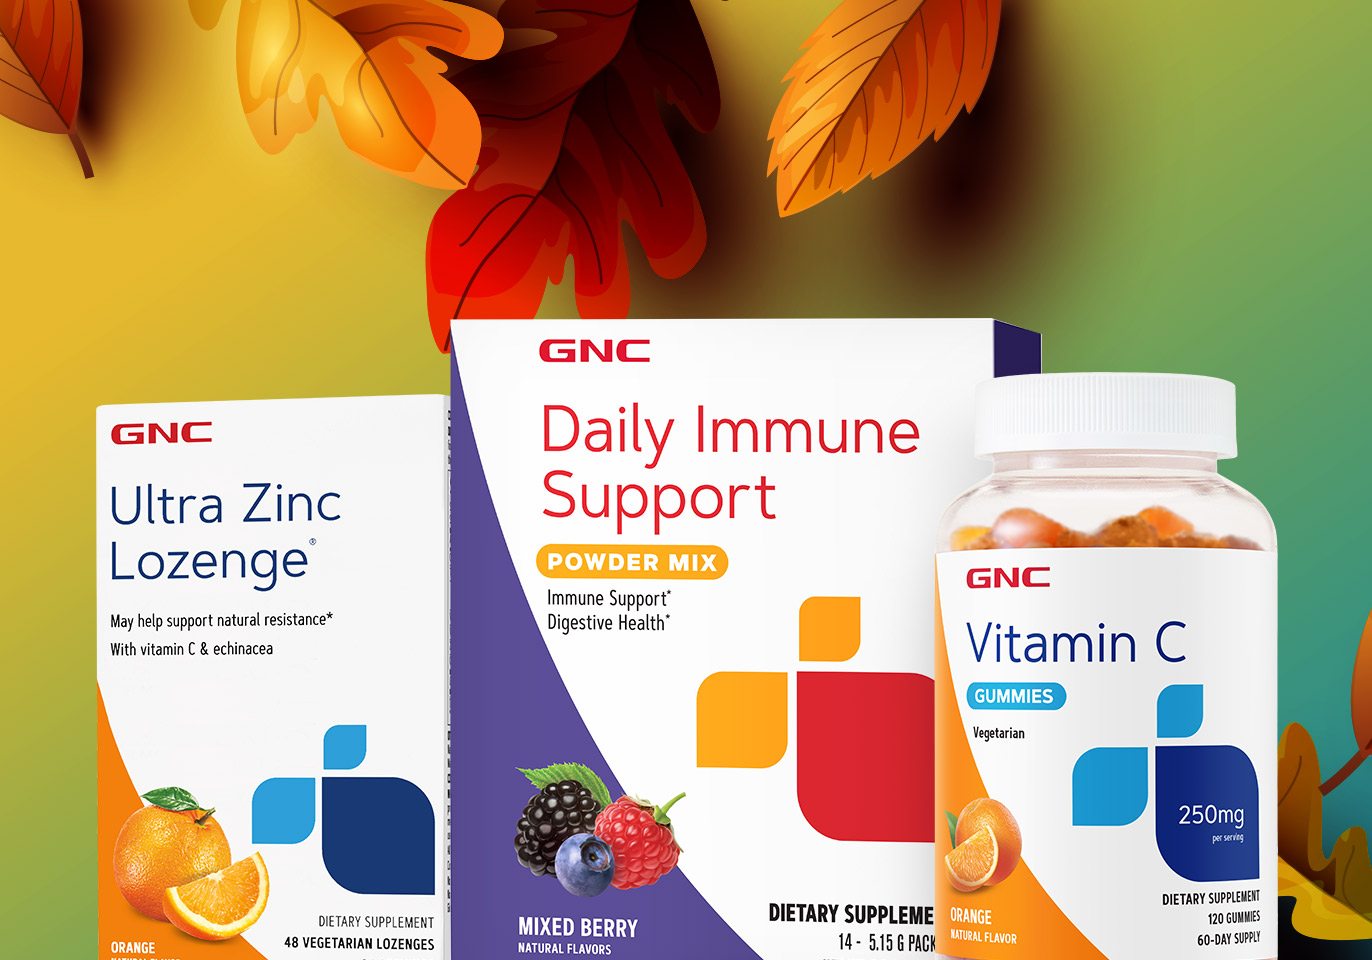 BUY 1, GET 1 FREE IMMUNE SUPPORT. As autumn gets going, a strong immune system is more important than ever. But don't worry—we've got your (immune system's) back*